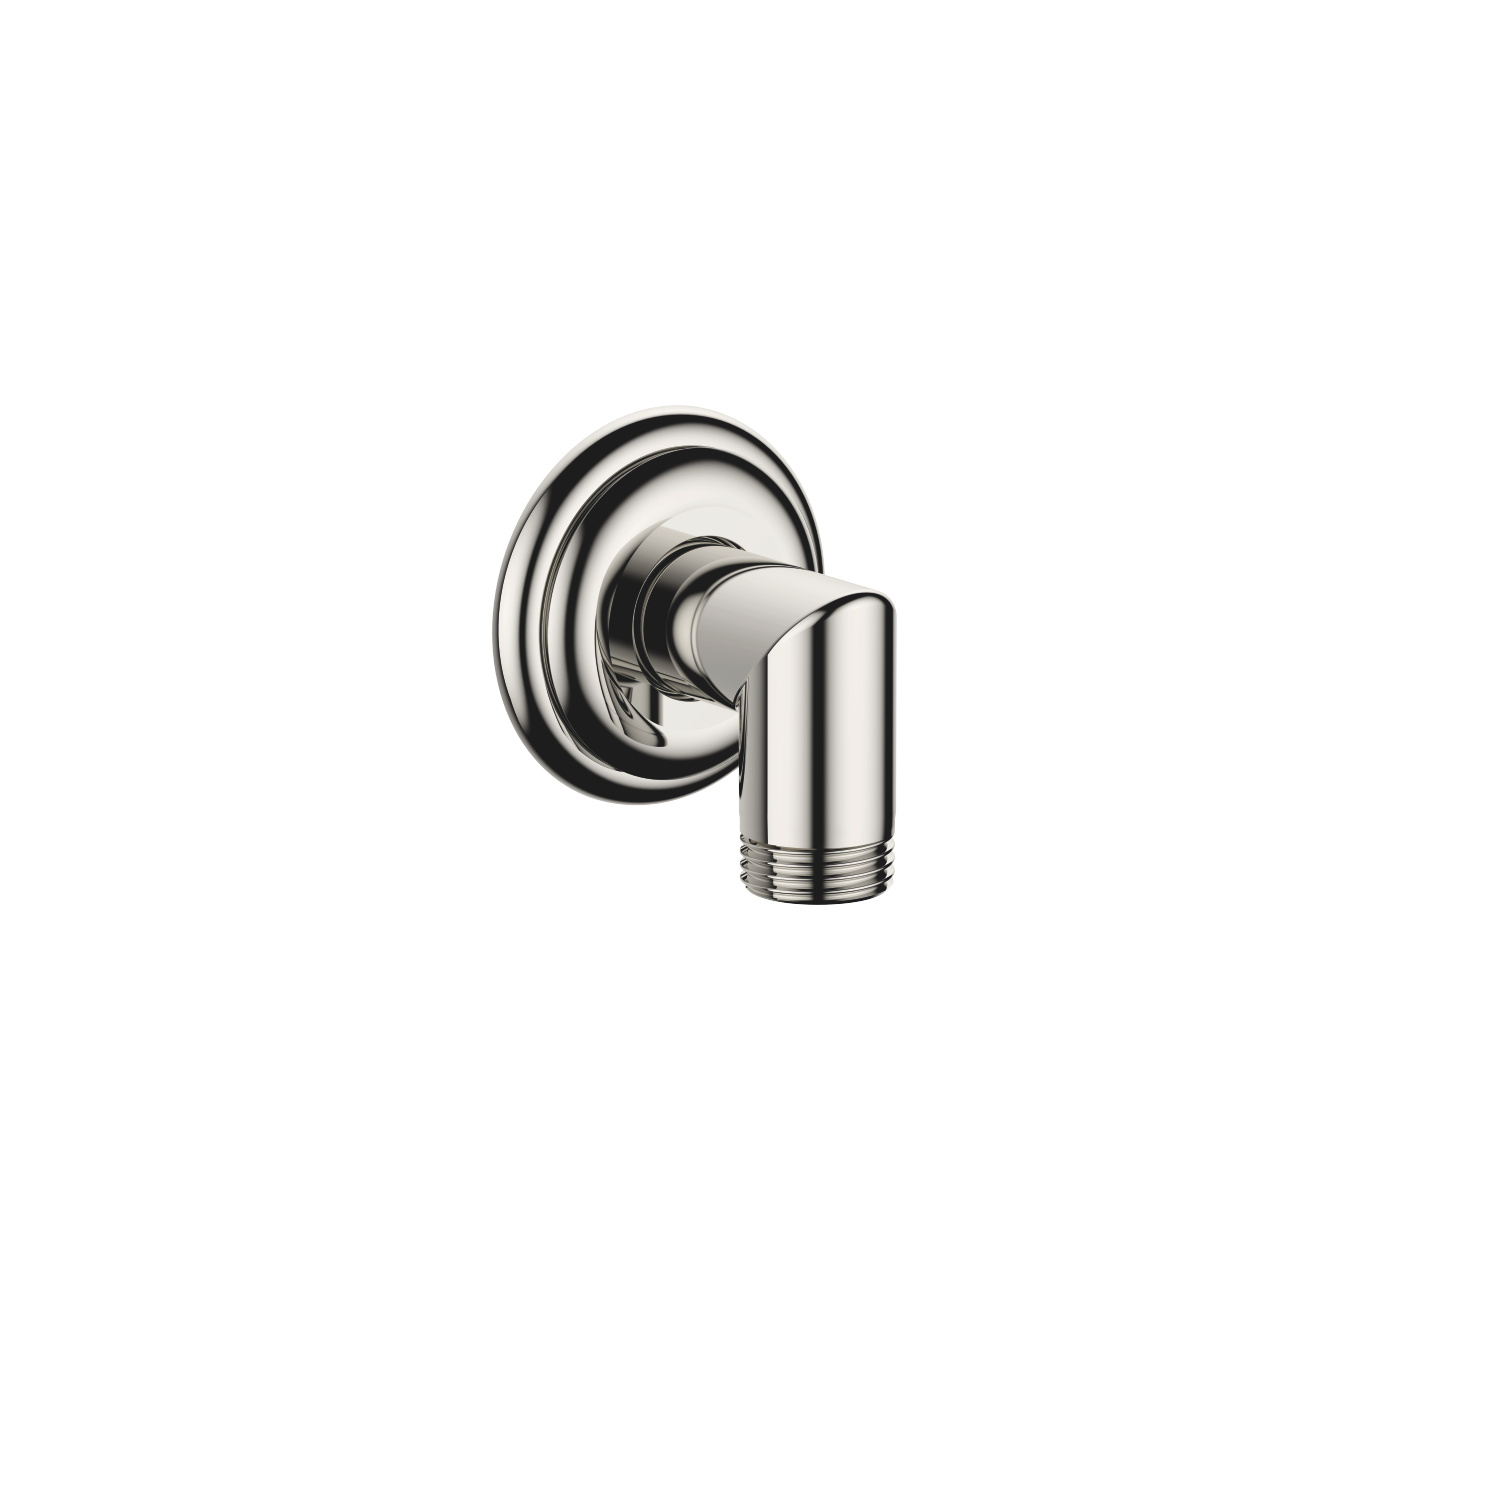 Wall elbow - platinum - 28 450 410-08